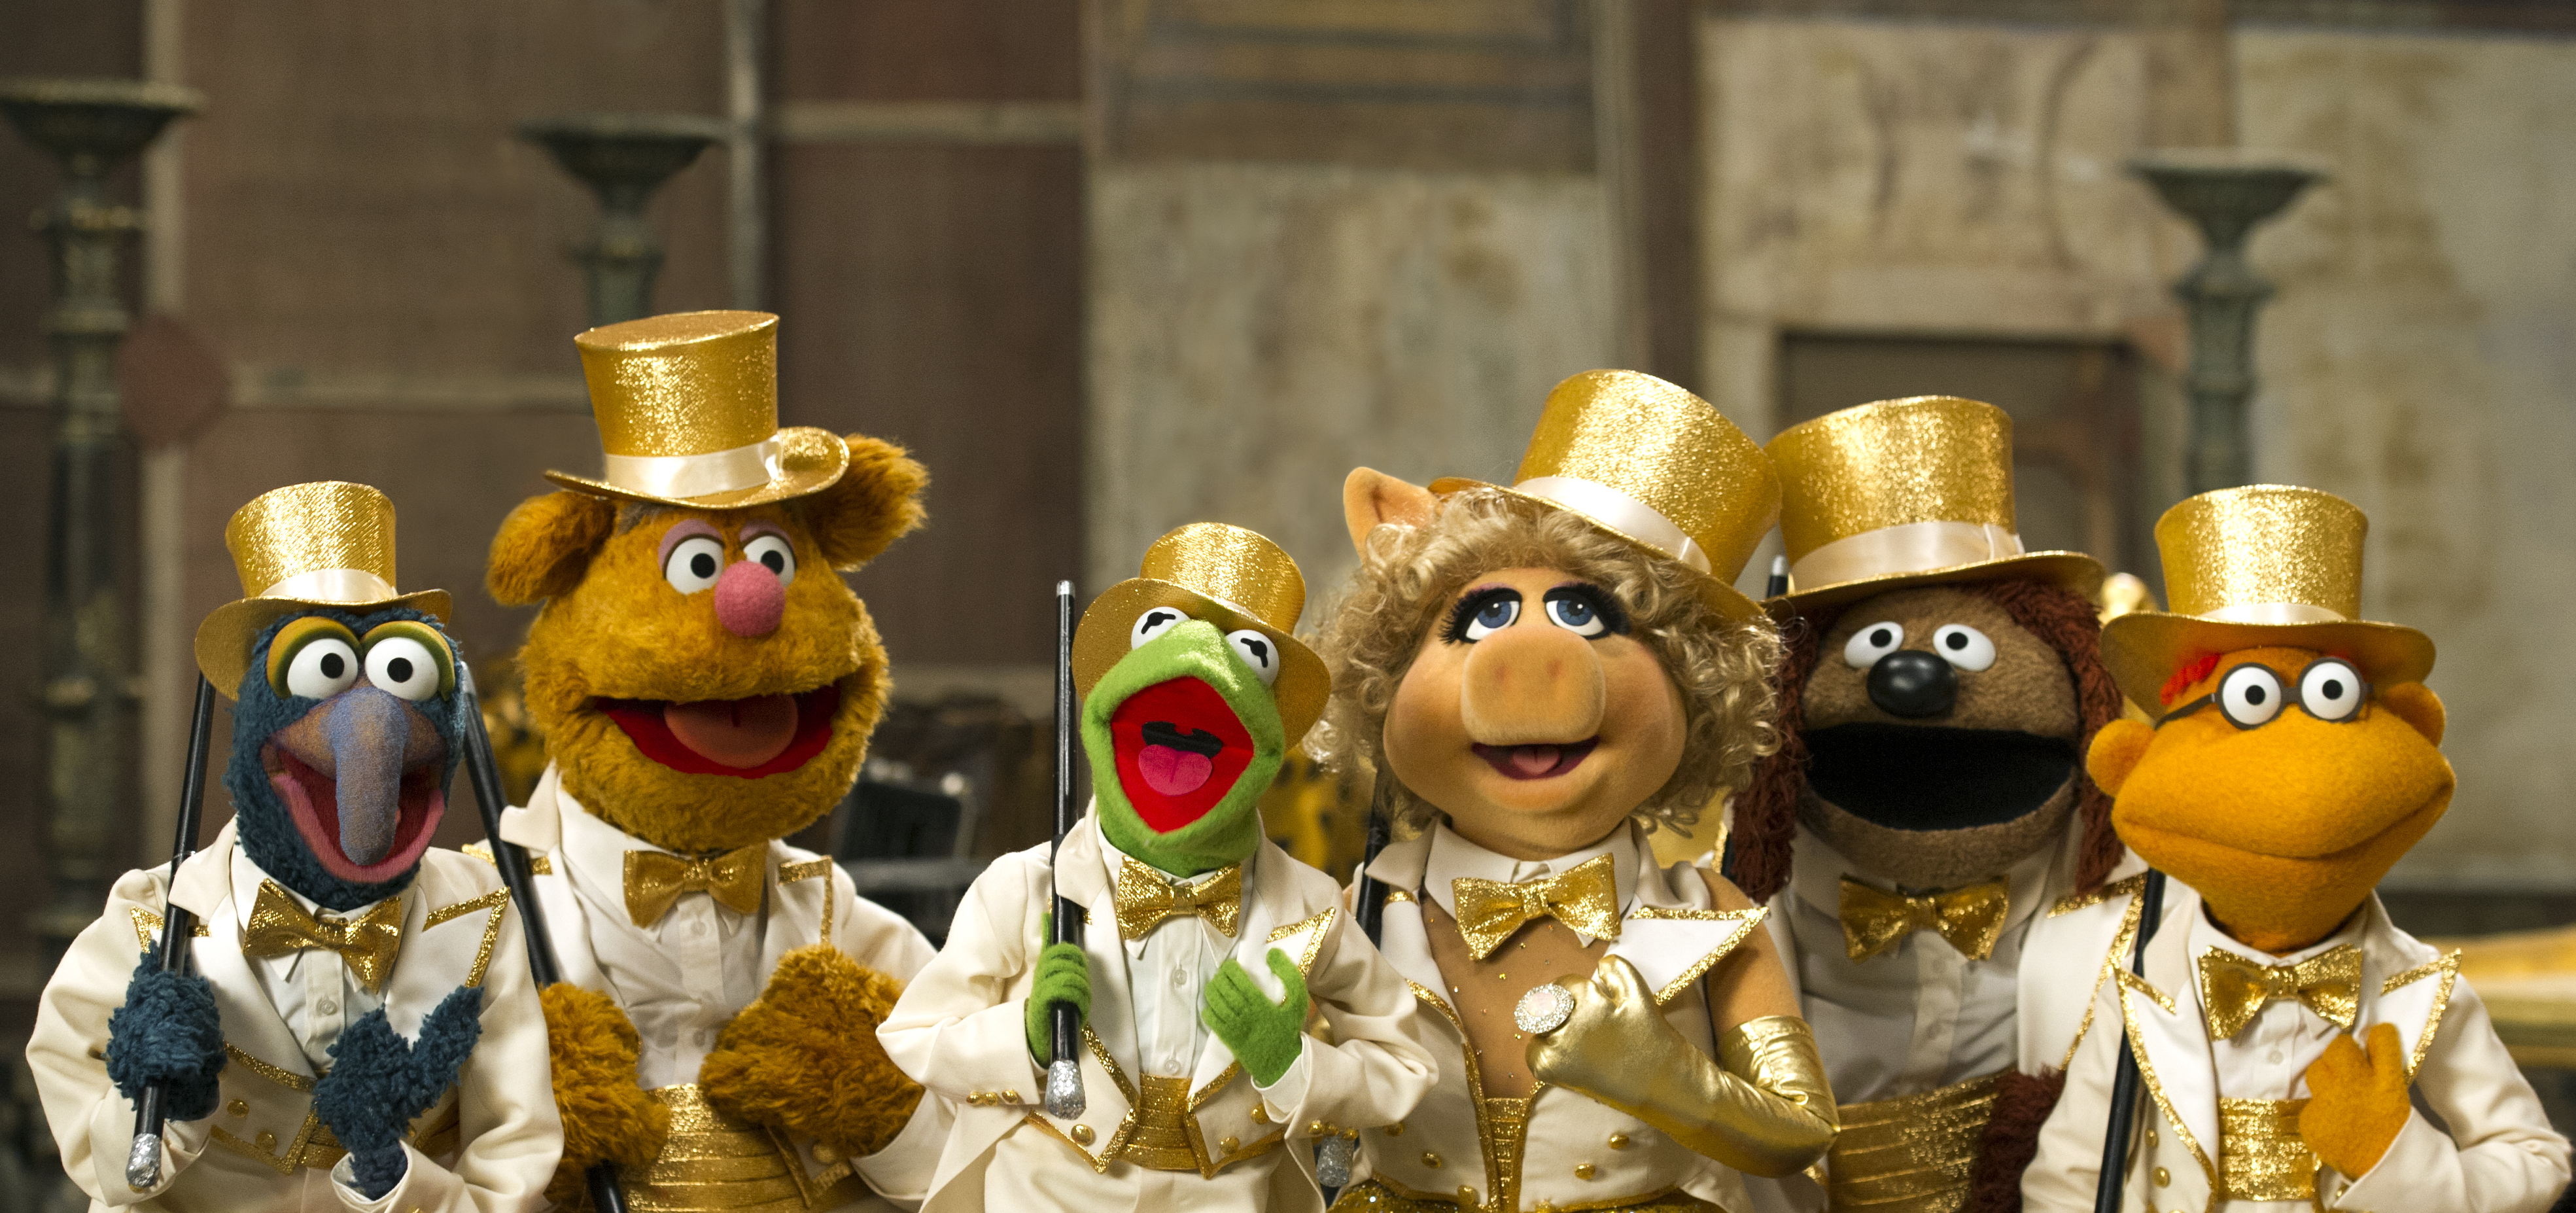 #MuppetsMostWantedEvent Muppets Review